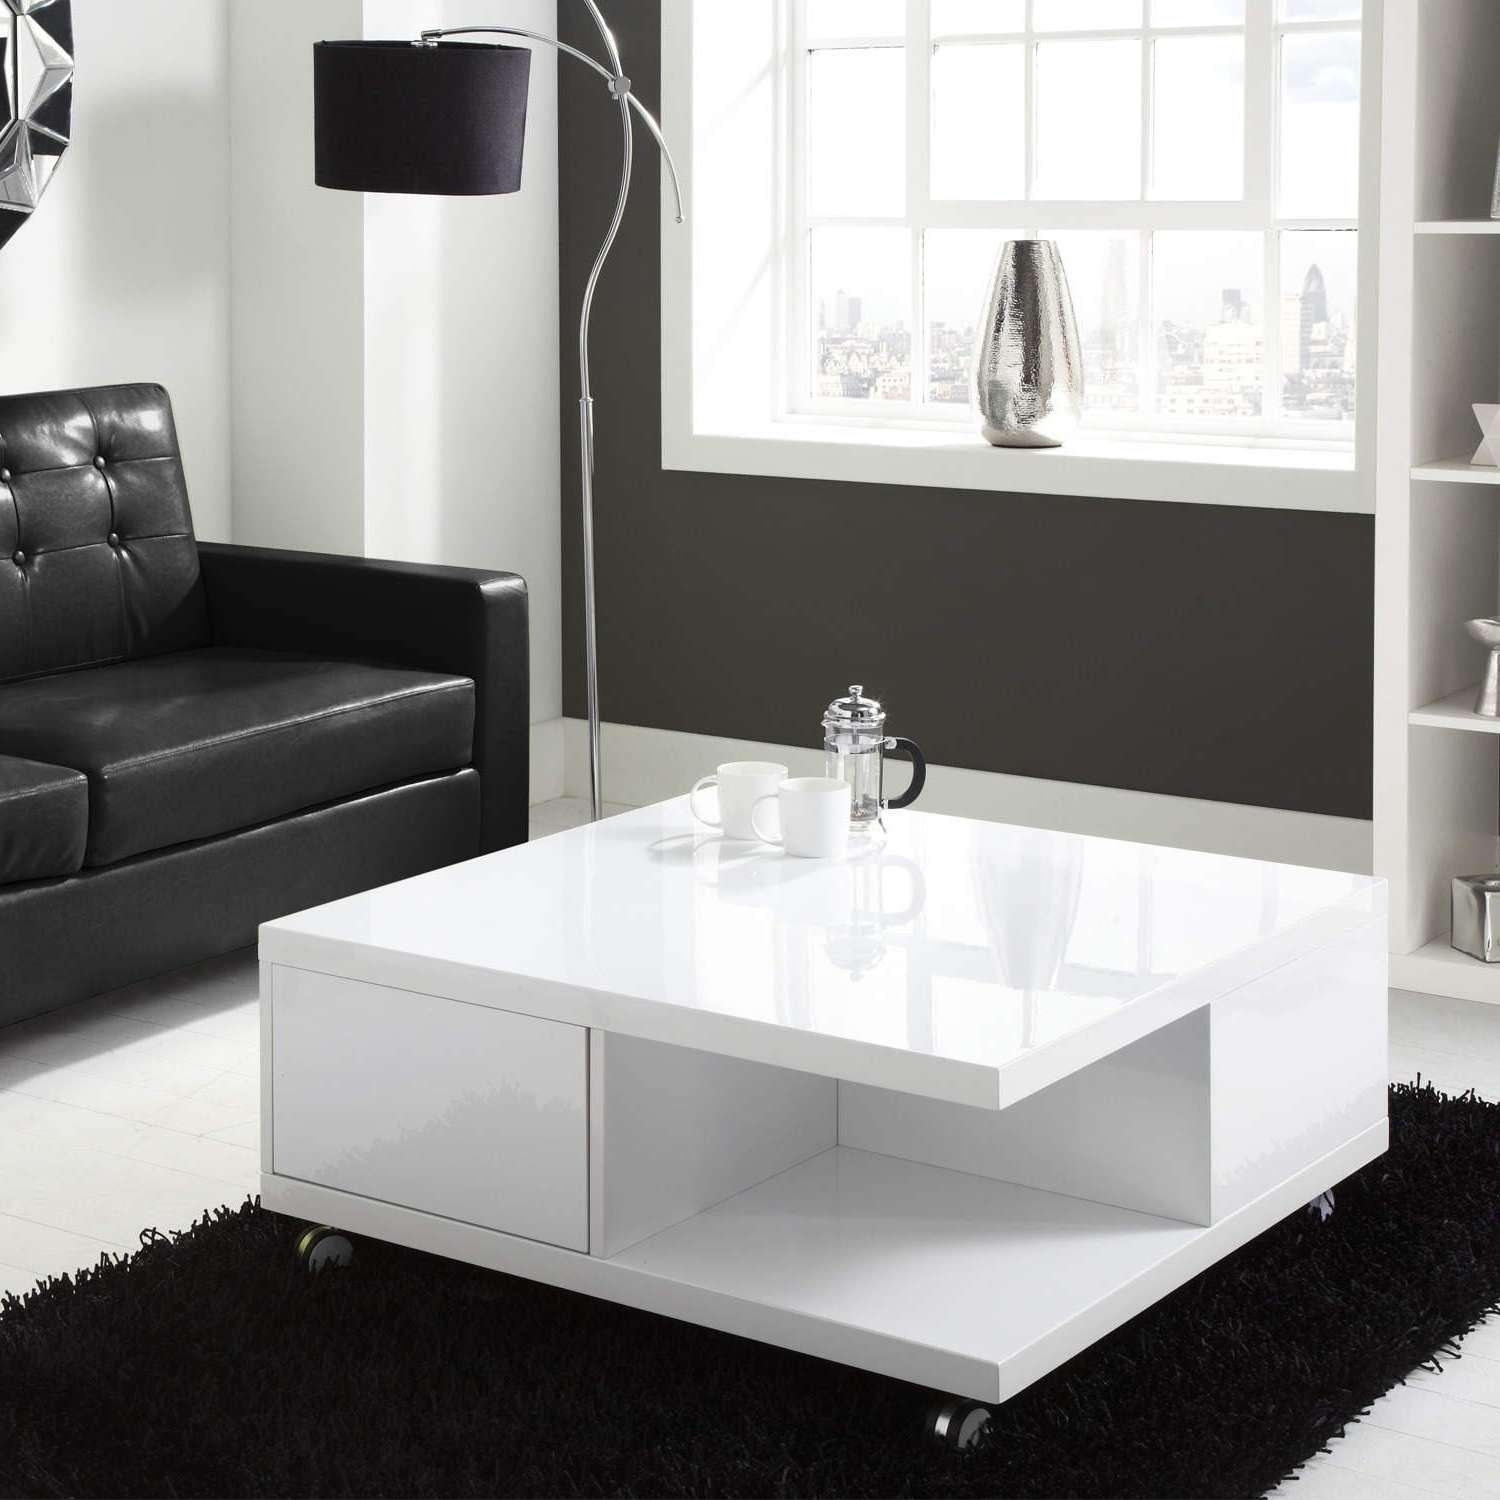 Fashionable High Gloss Coffee Tables Pertaining To Coffee Tables : Storage Table High Gloss White Coffee With Drawers (View 15 of 20)